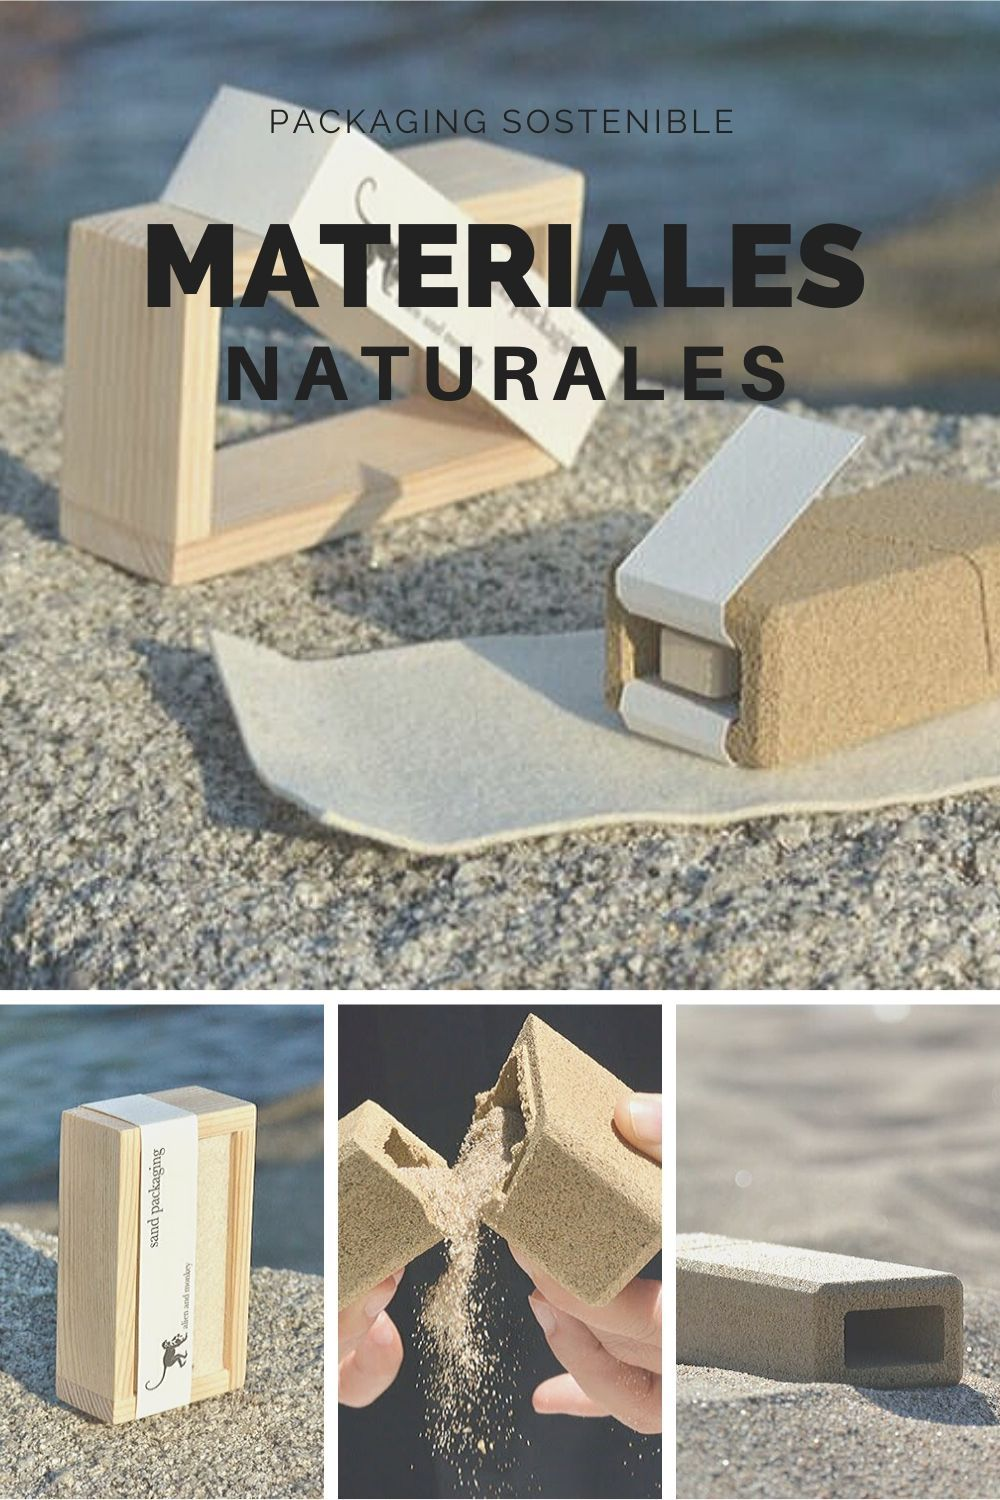 materiales naturales, packaging sostenible